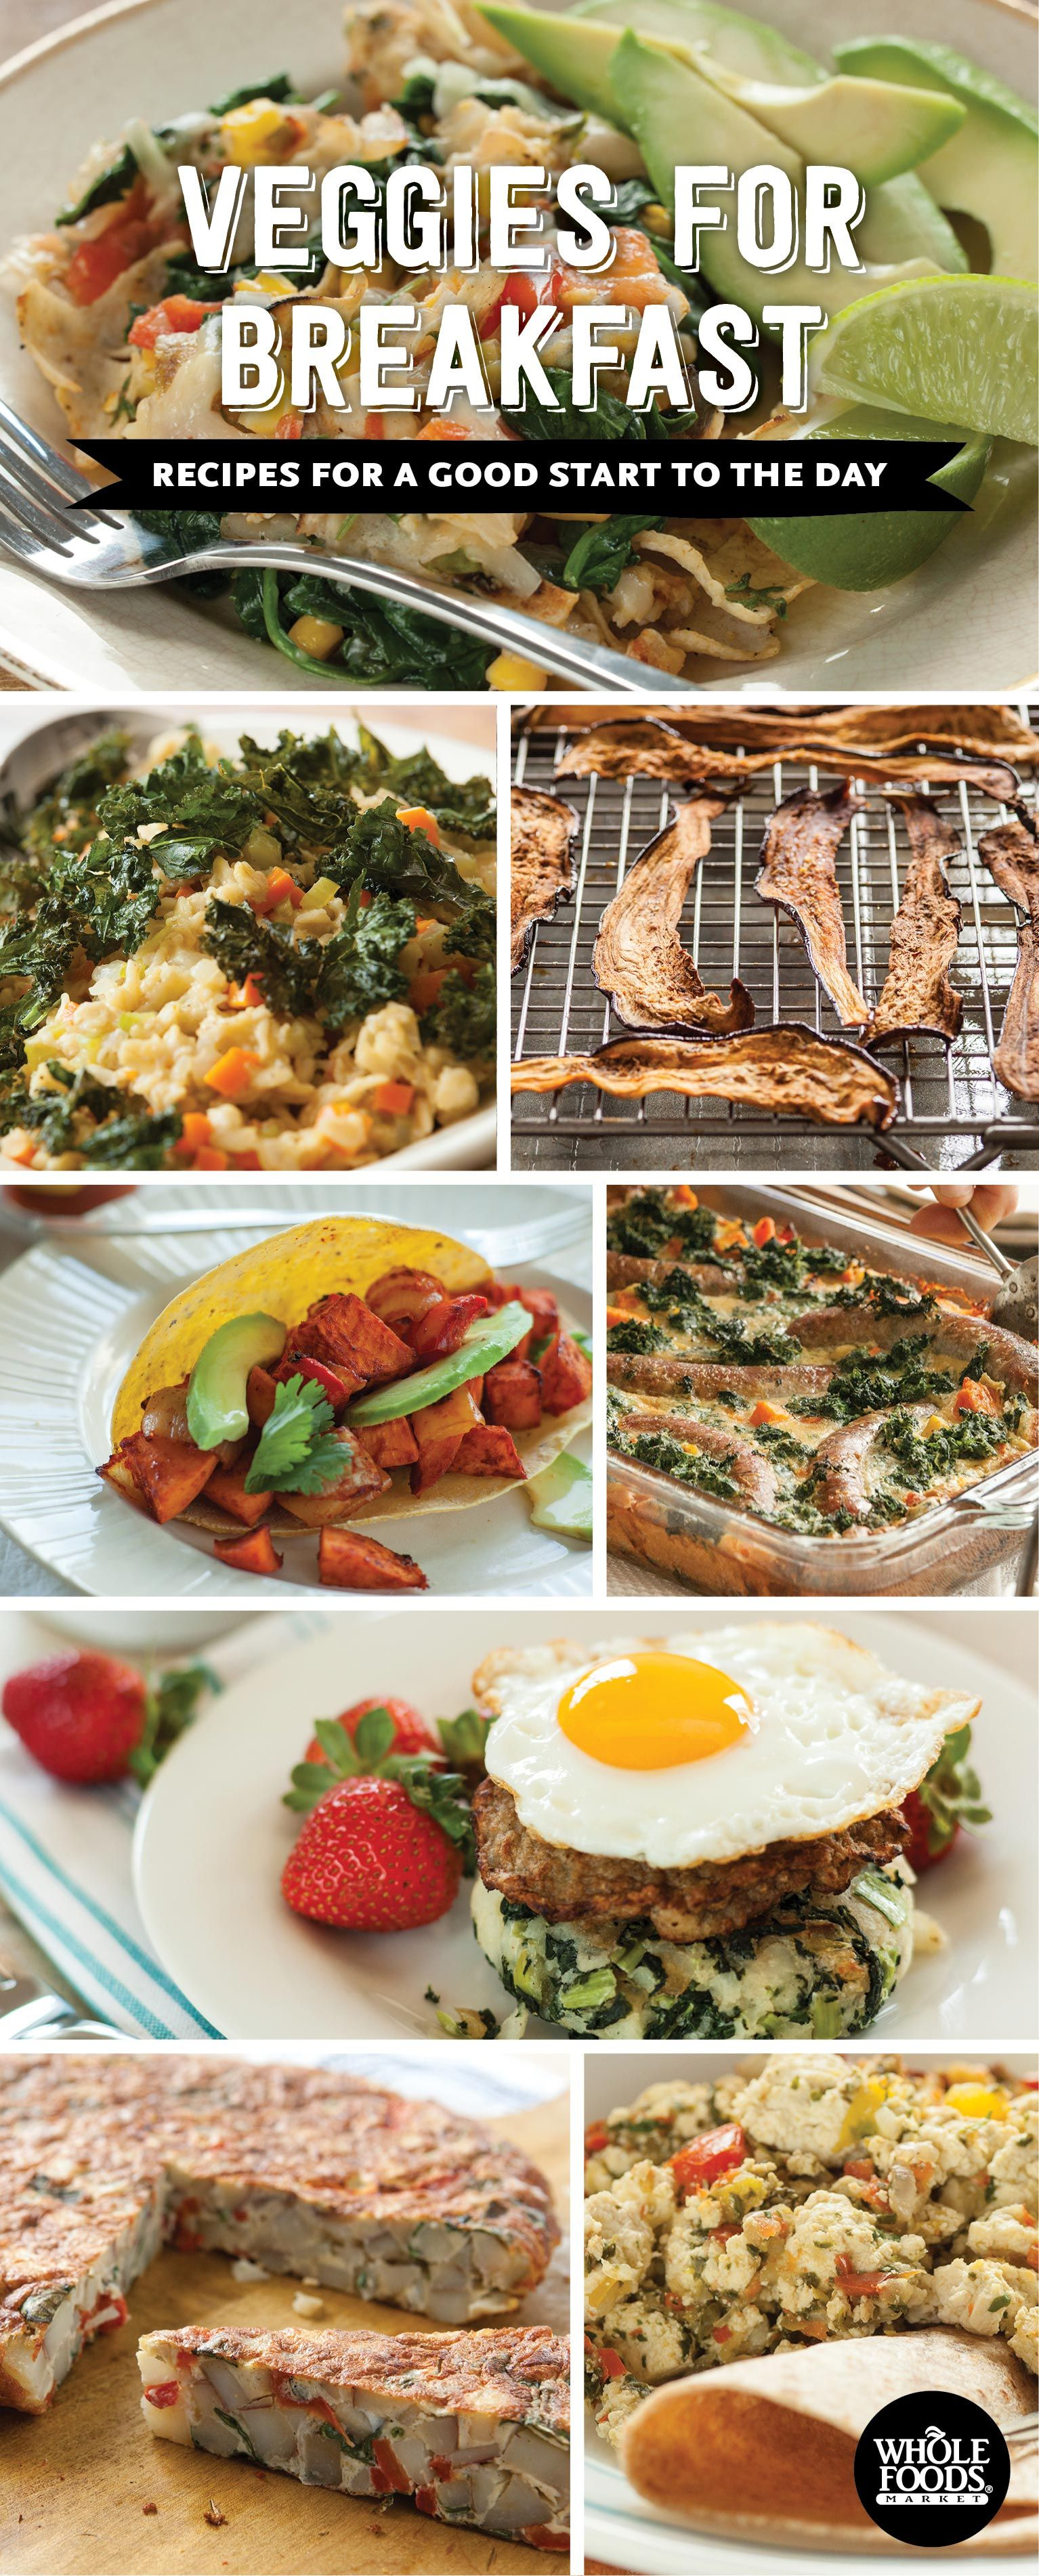 Eat more veggies yo there are 8 great recipes using amazing there are 8 great recipes using amazing ingredients like avocado kale eggplant sweet potatoes collards even whole grains like oats forumfinder Choice Image